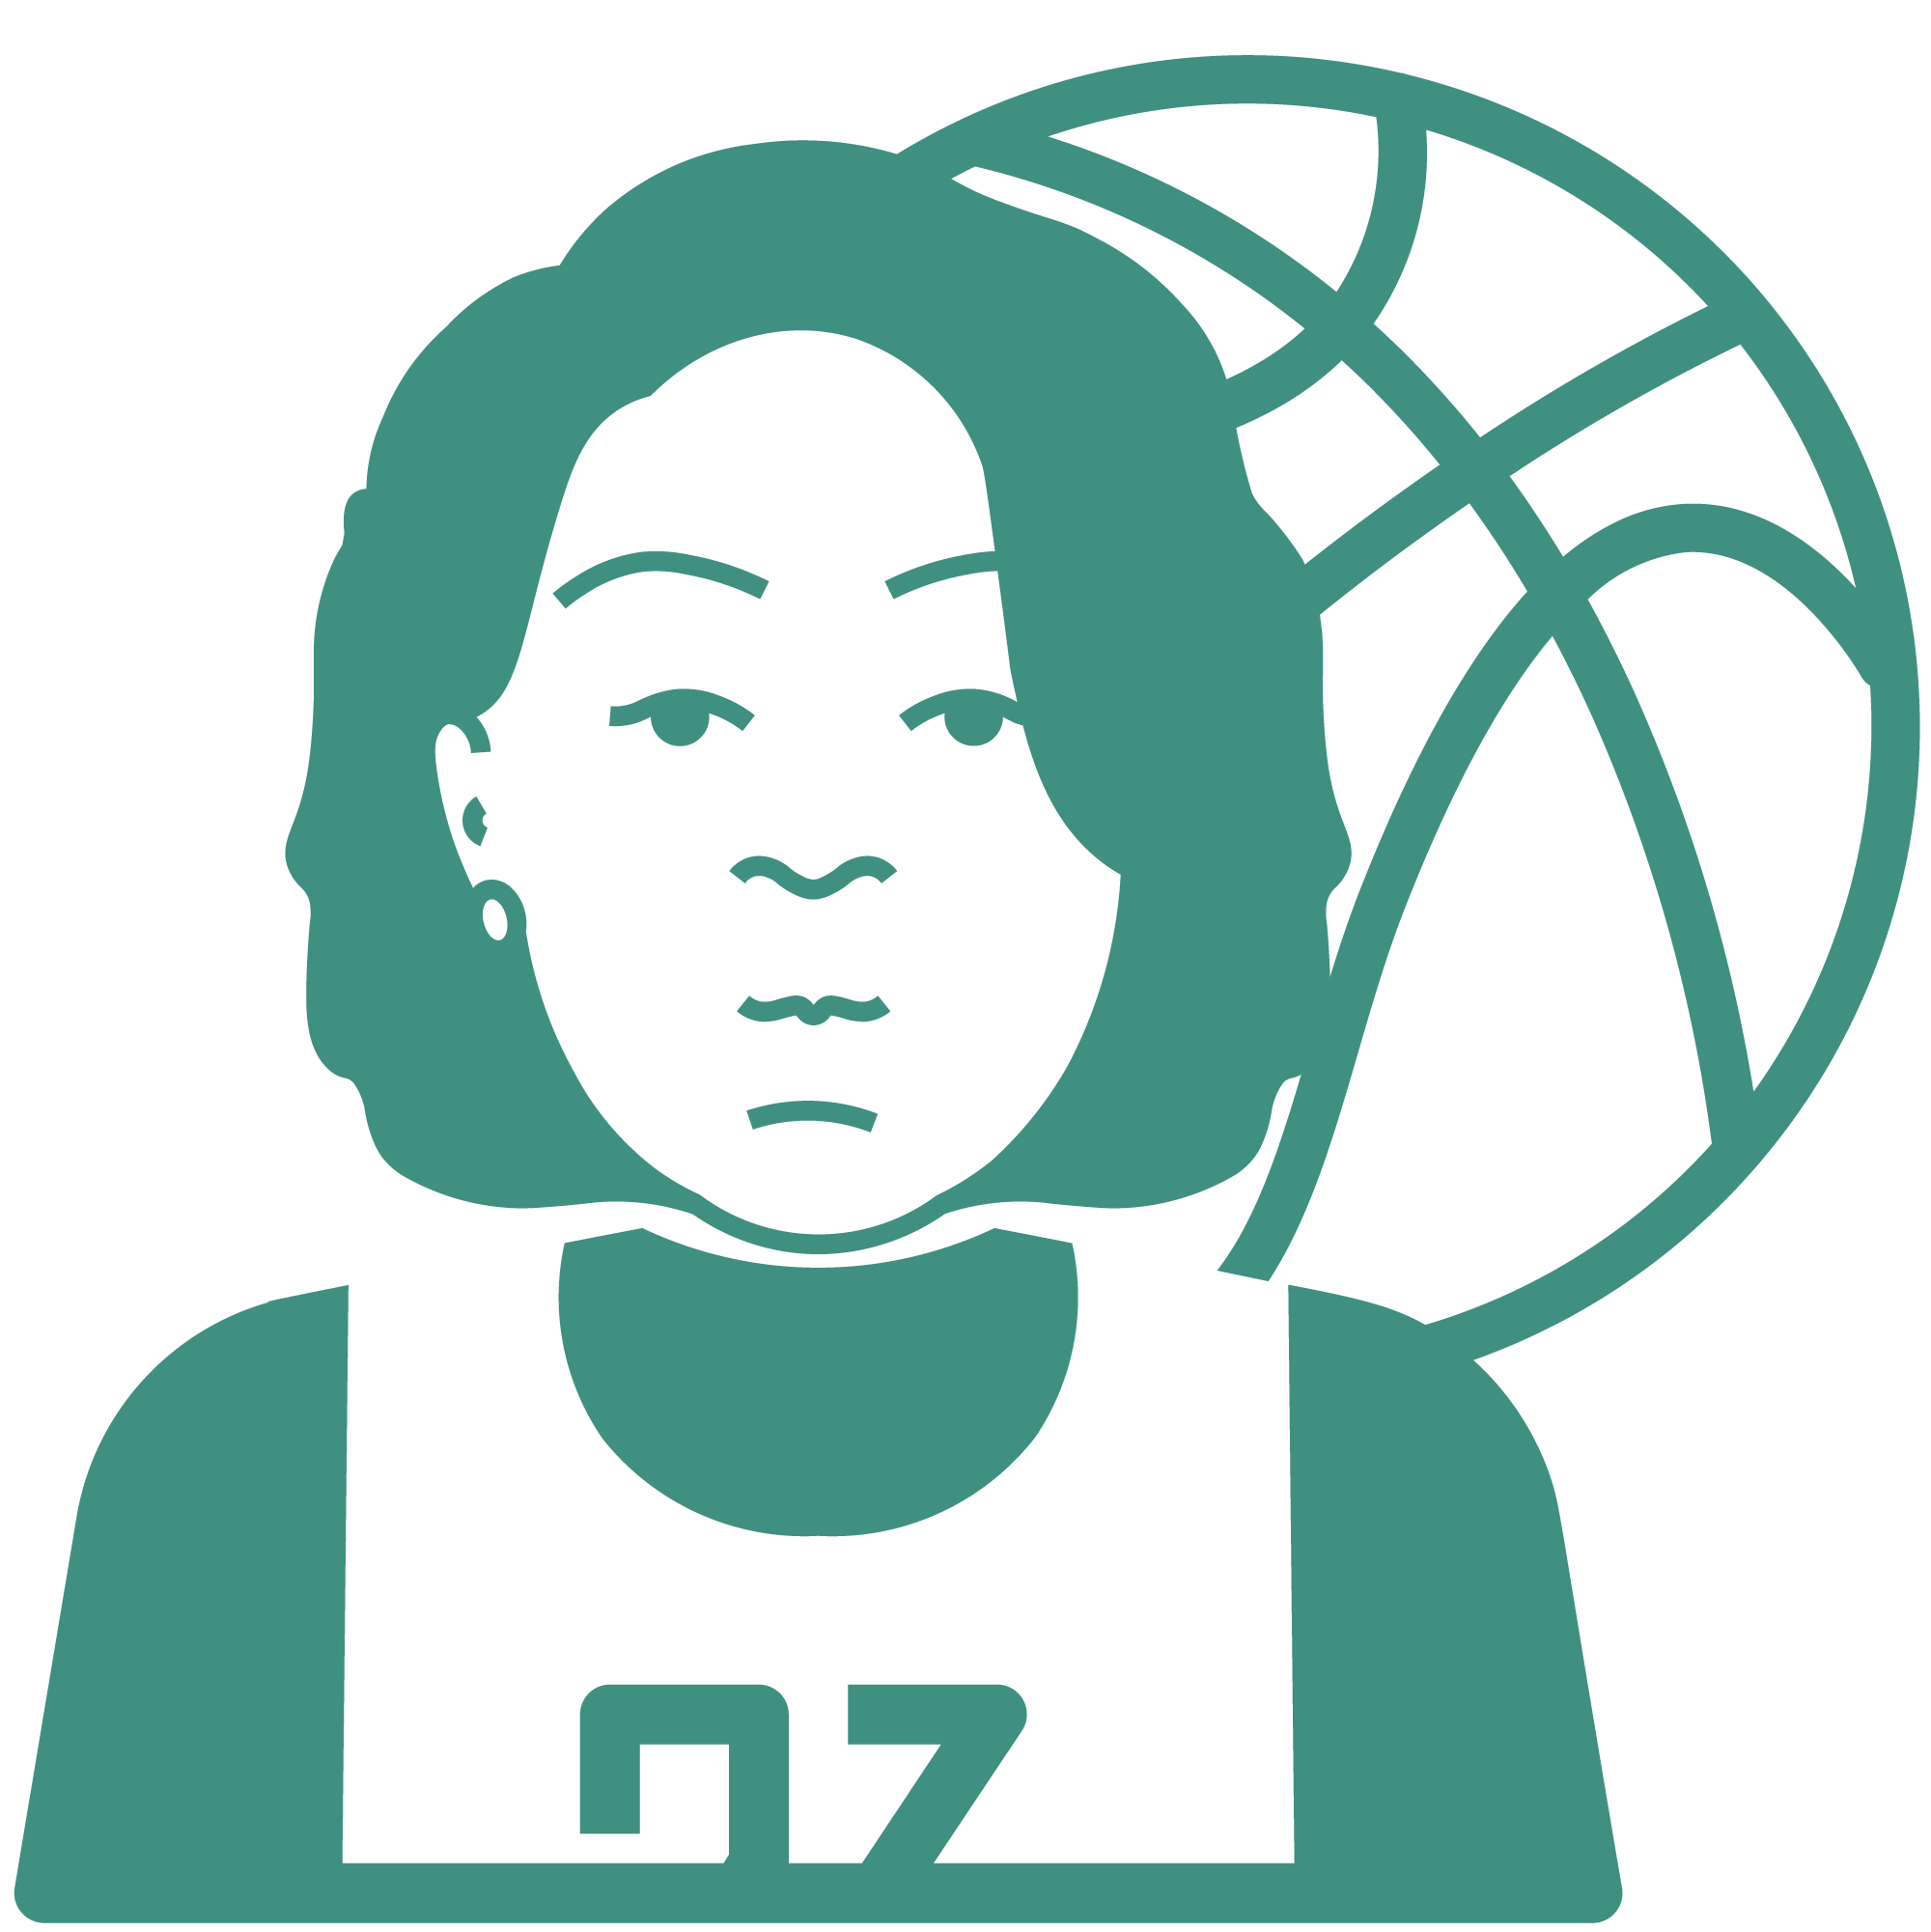 An icon depicting women's basketball